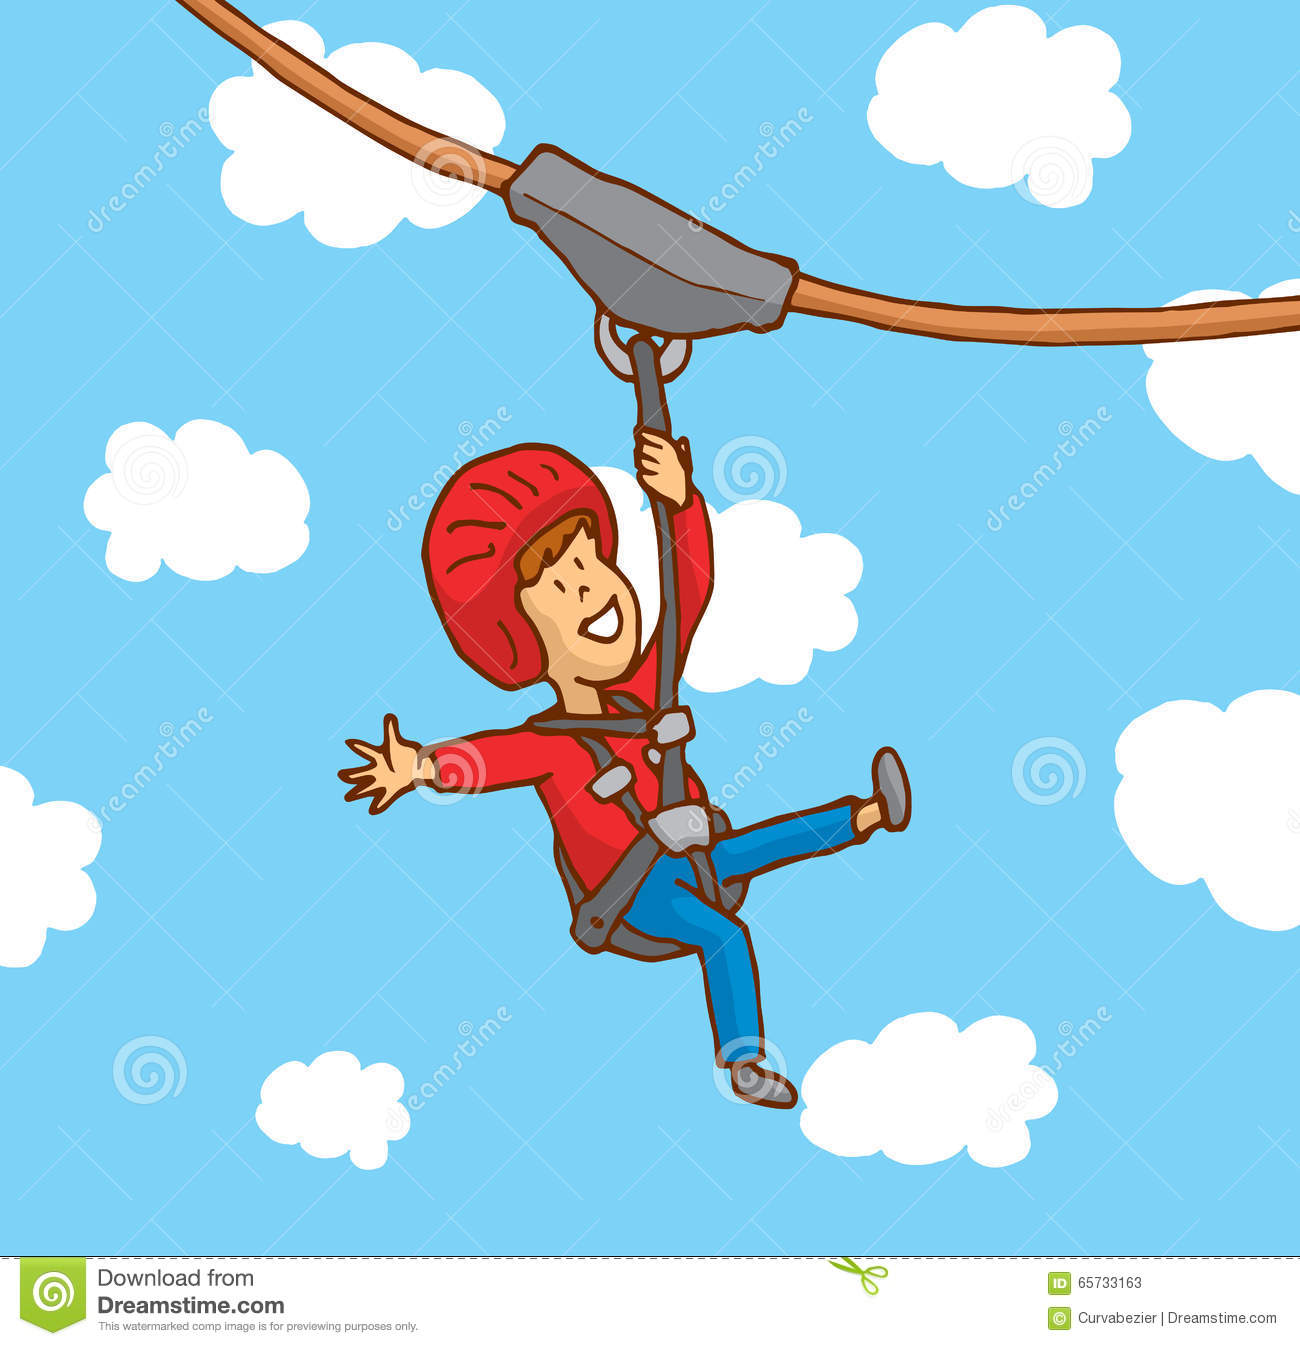 Zip Line Clipart : Happy boy enjoying a zipline stock vector illustration